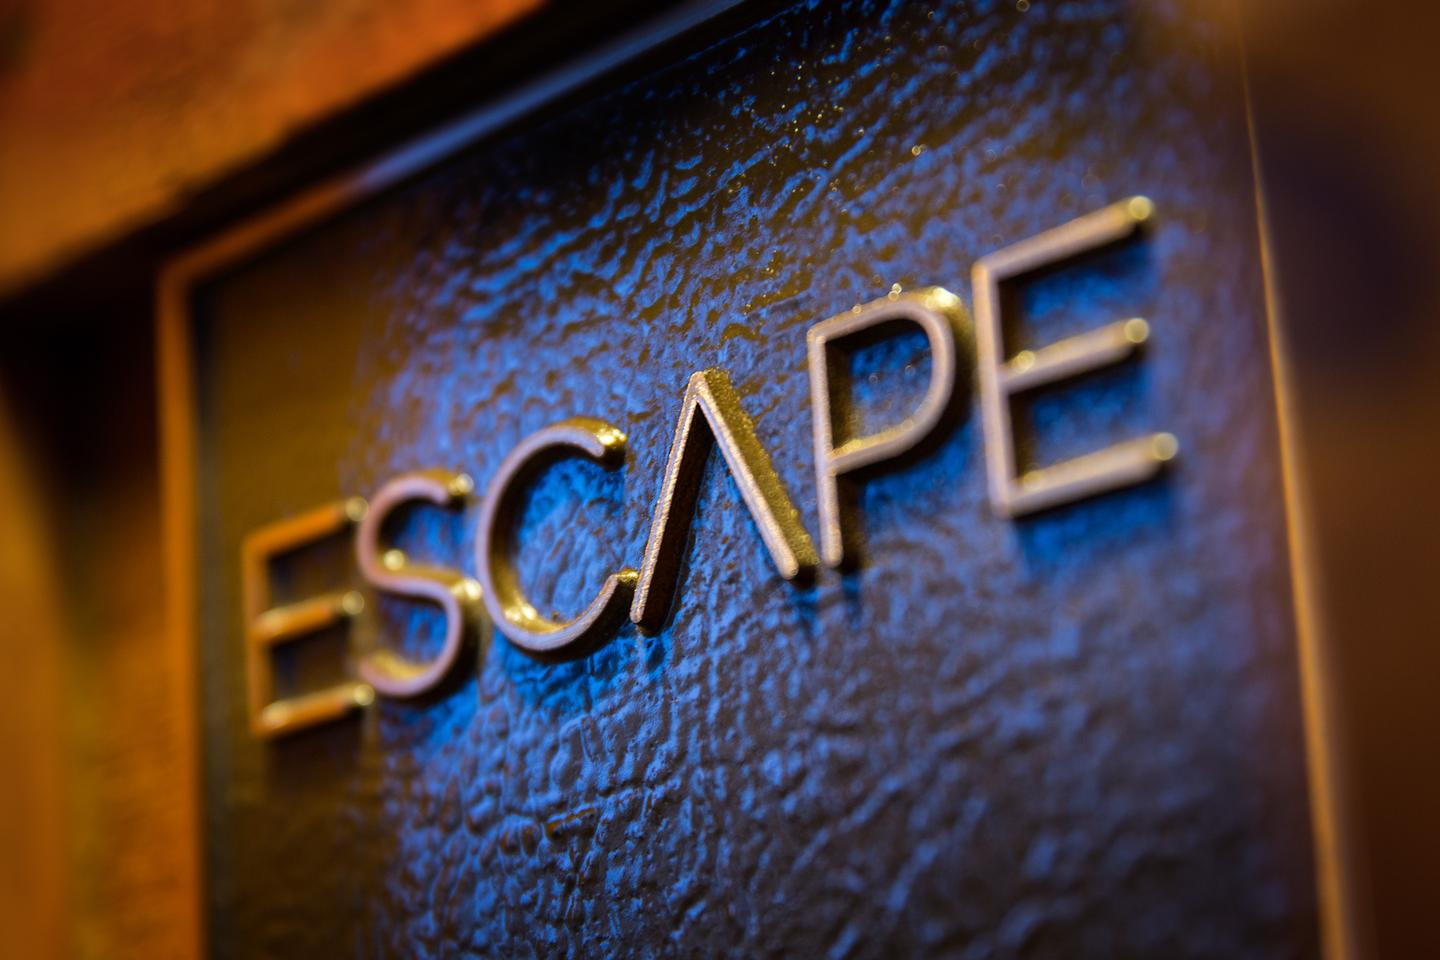 ESCAPE is envisioned as a vacation cabin, first home, remote getaway, or rental property (Photo: Canoe Bay)